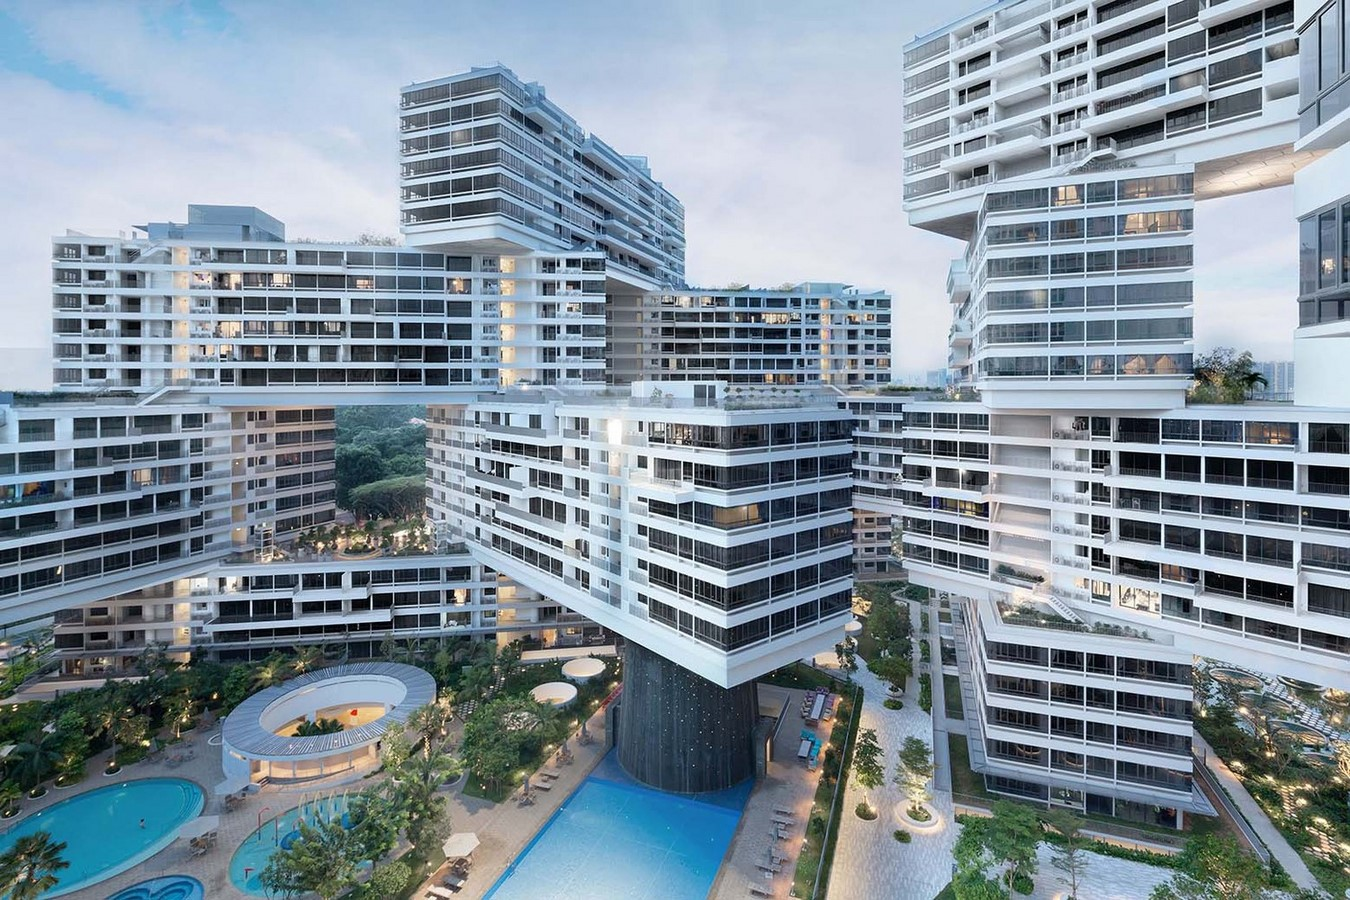 The Interlace by OMA- A new direction for cities - Sheet11